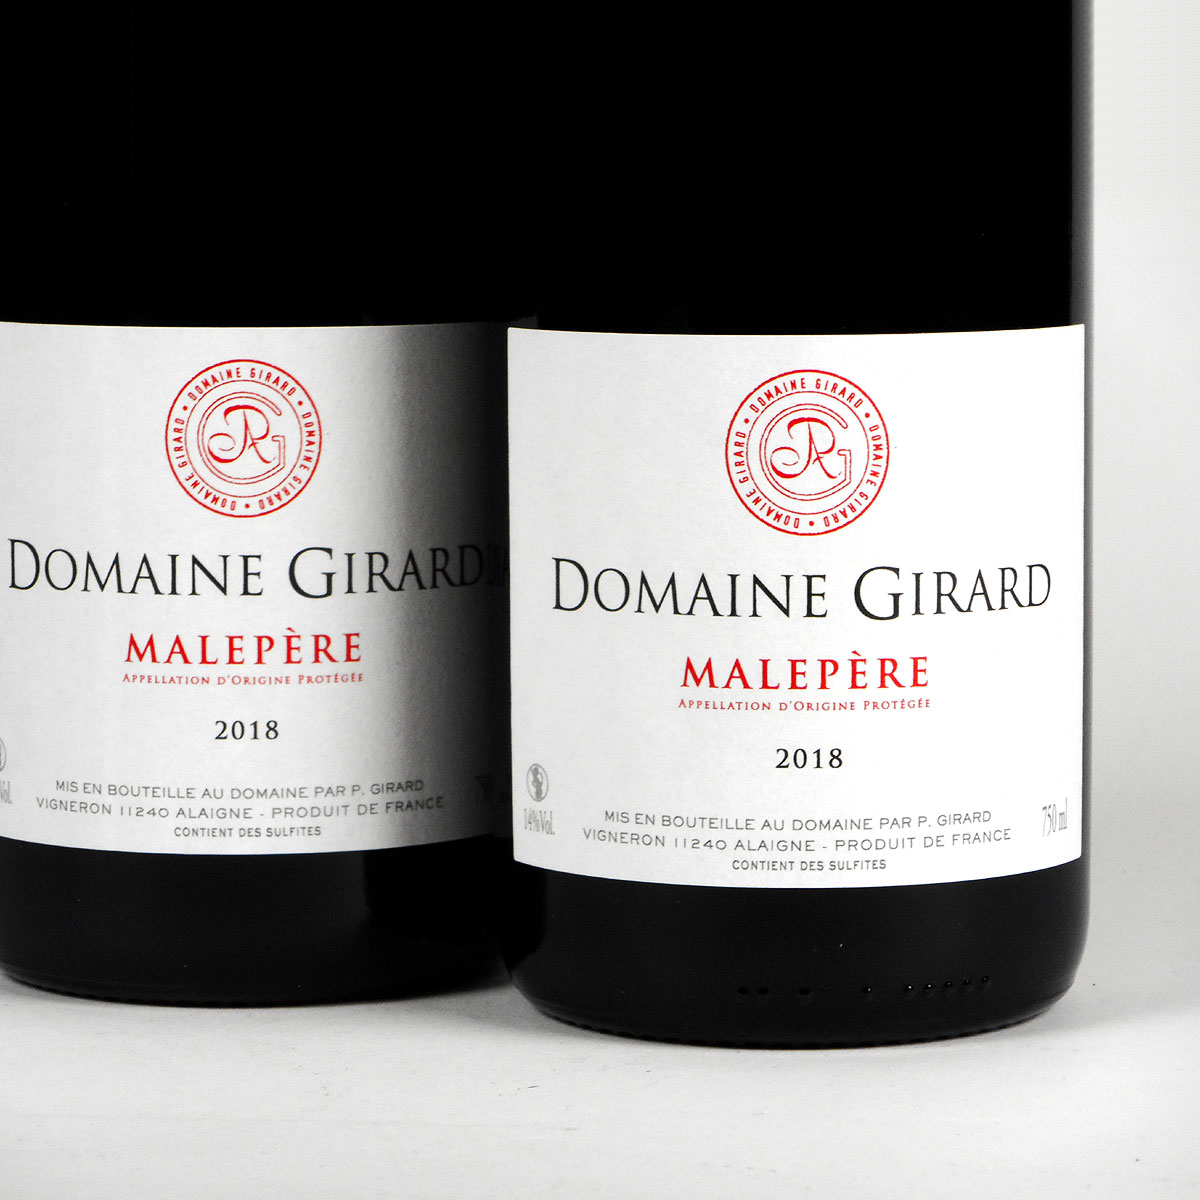 Malepère: Domaine Girard 'Cuvée Tradition' 2018